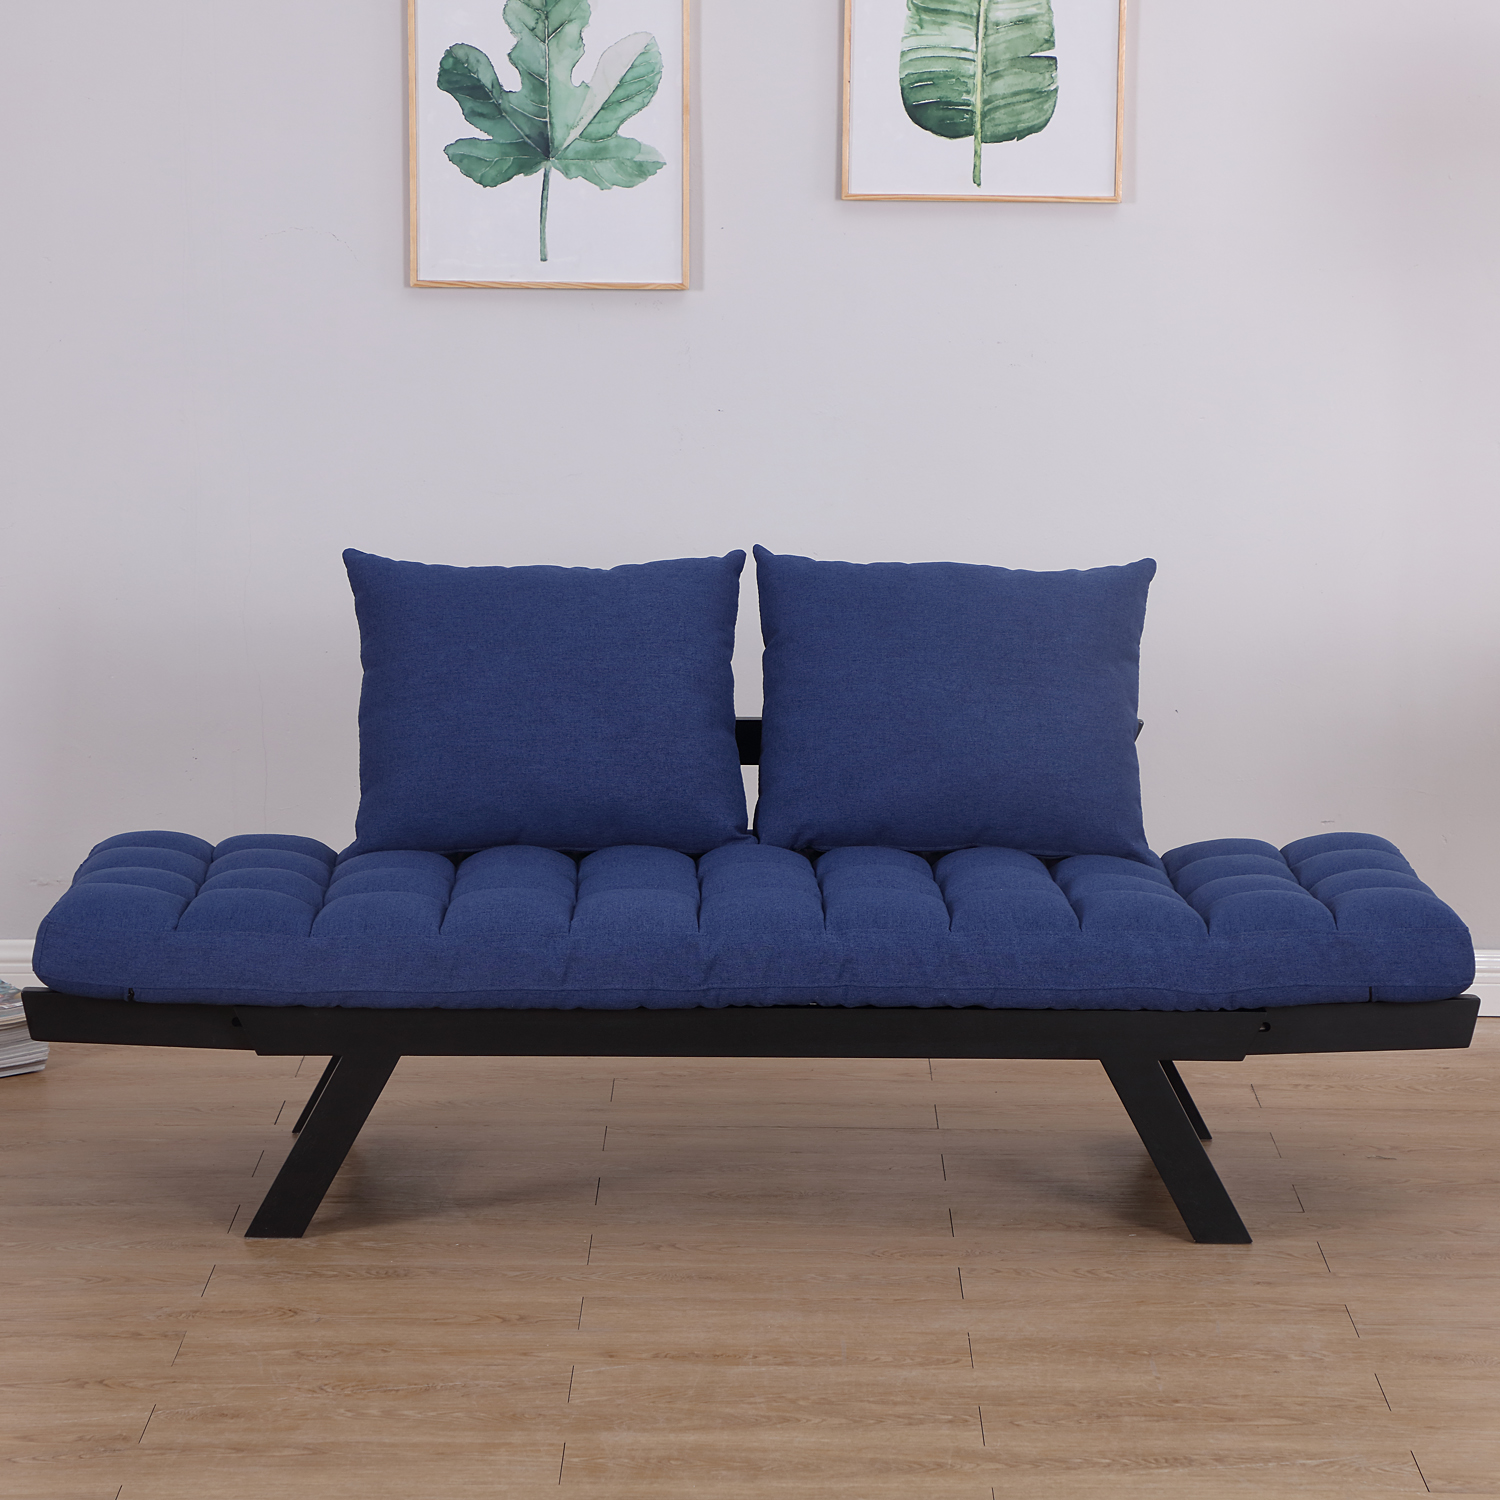 Convertible-Sofa-Bed-Sleeper-Couch-Chaise-Lounge-Chair-Adjustable-Padded-Pillow thumbnail 15